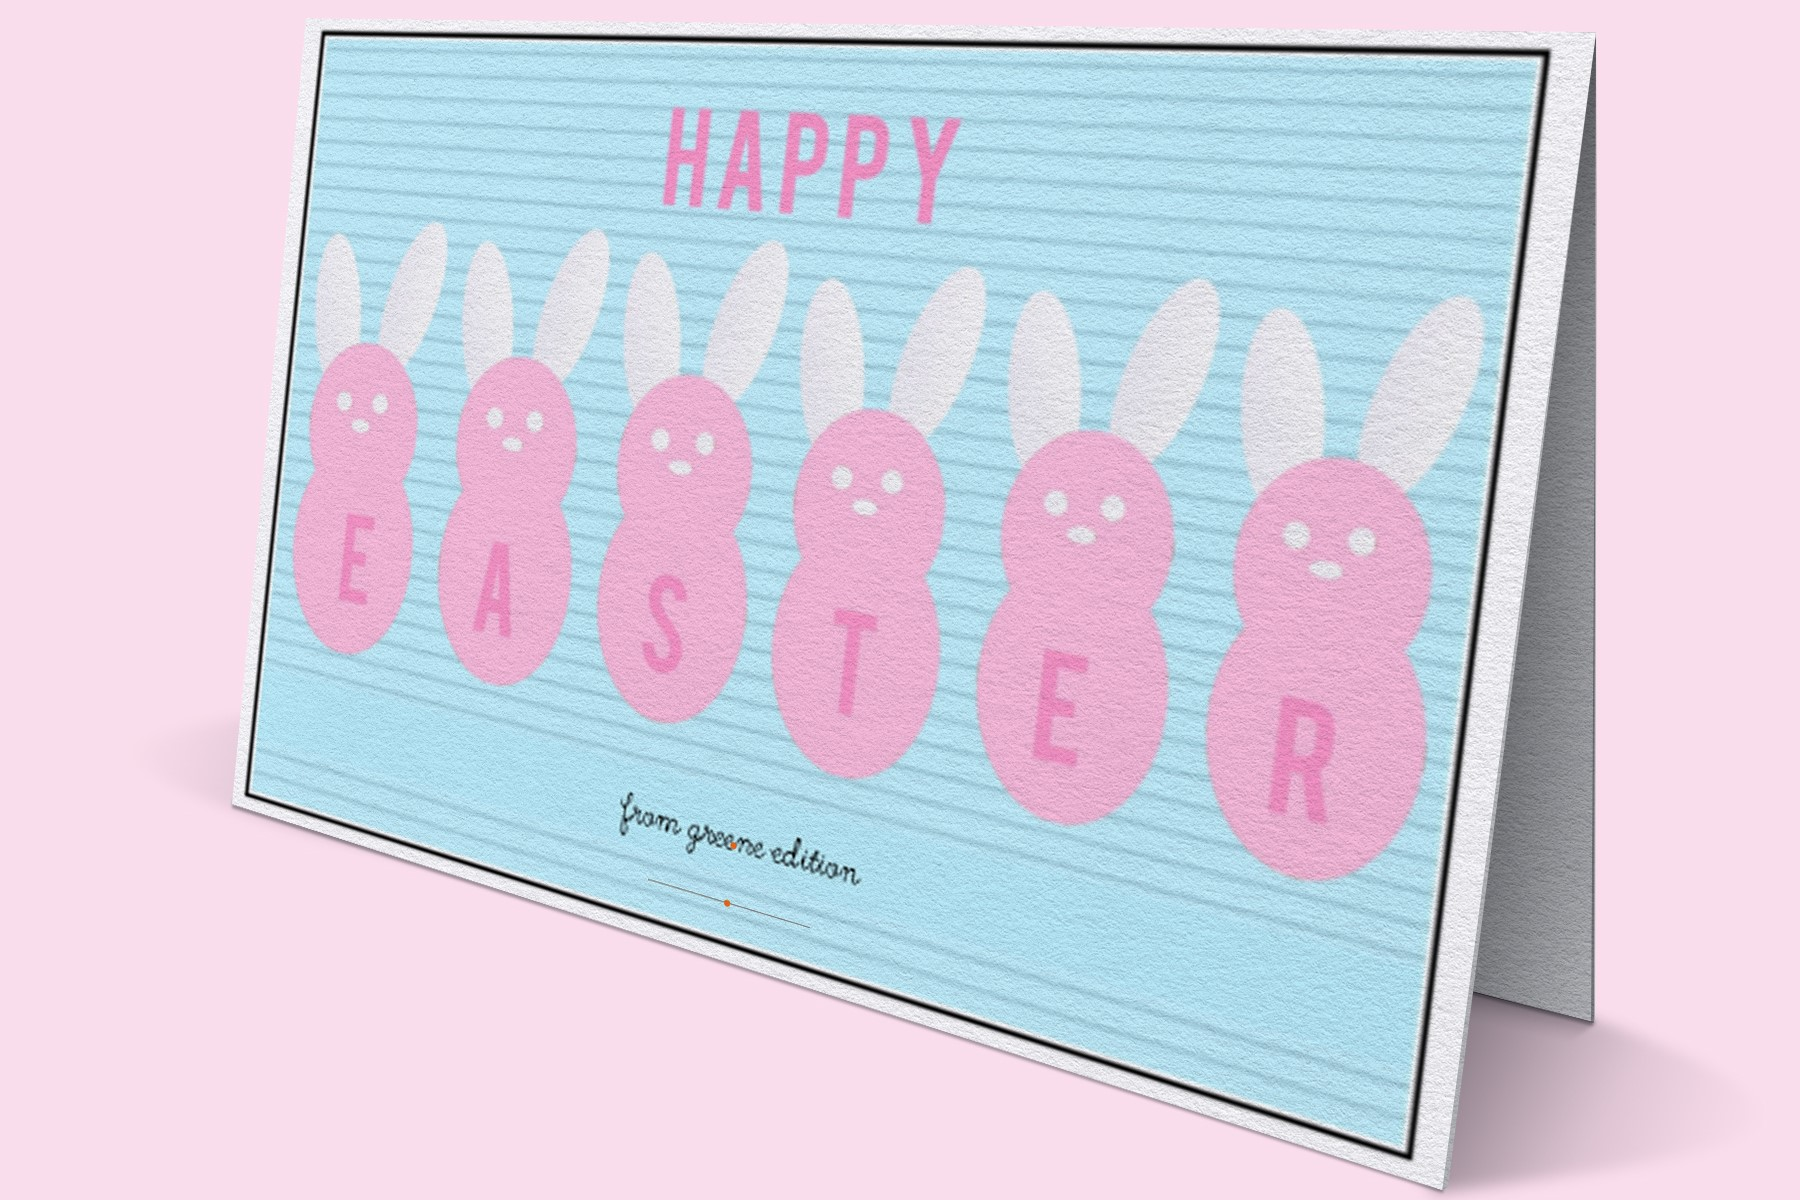 greene edition - easter Card 2018 freebie- free digital scrapbooking